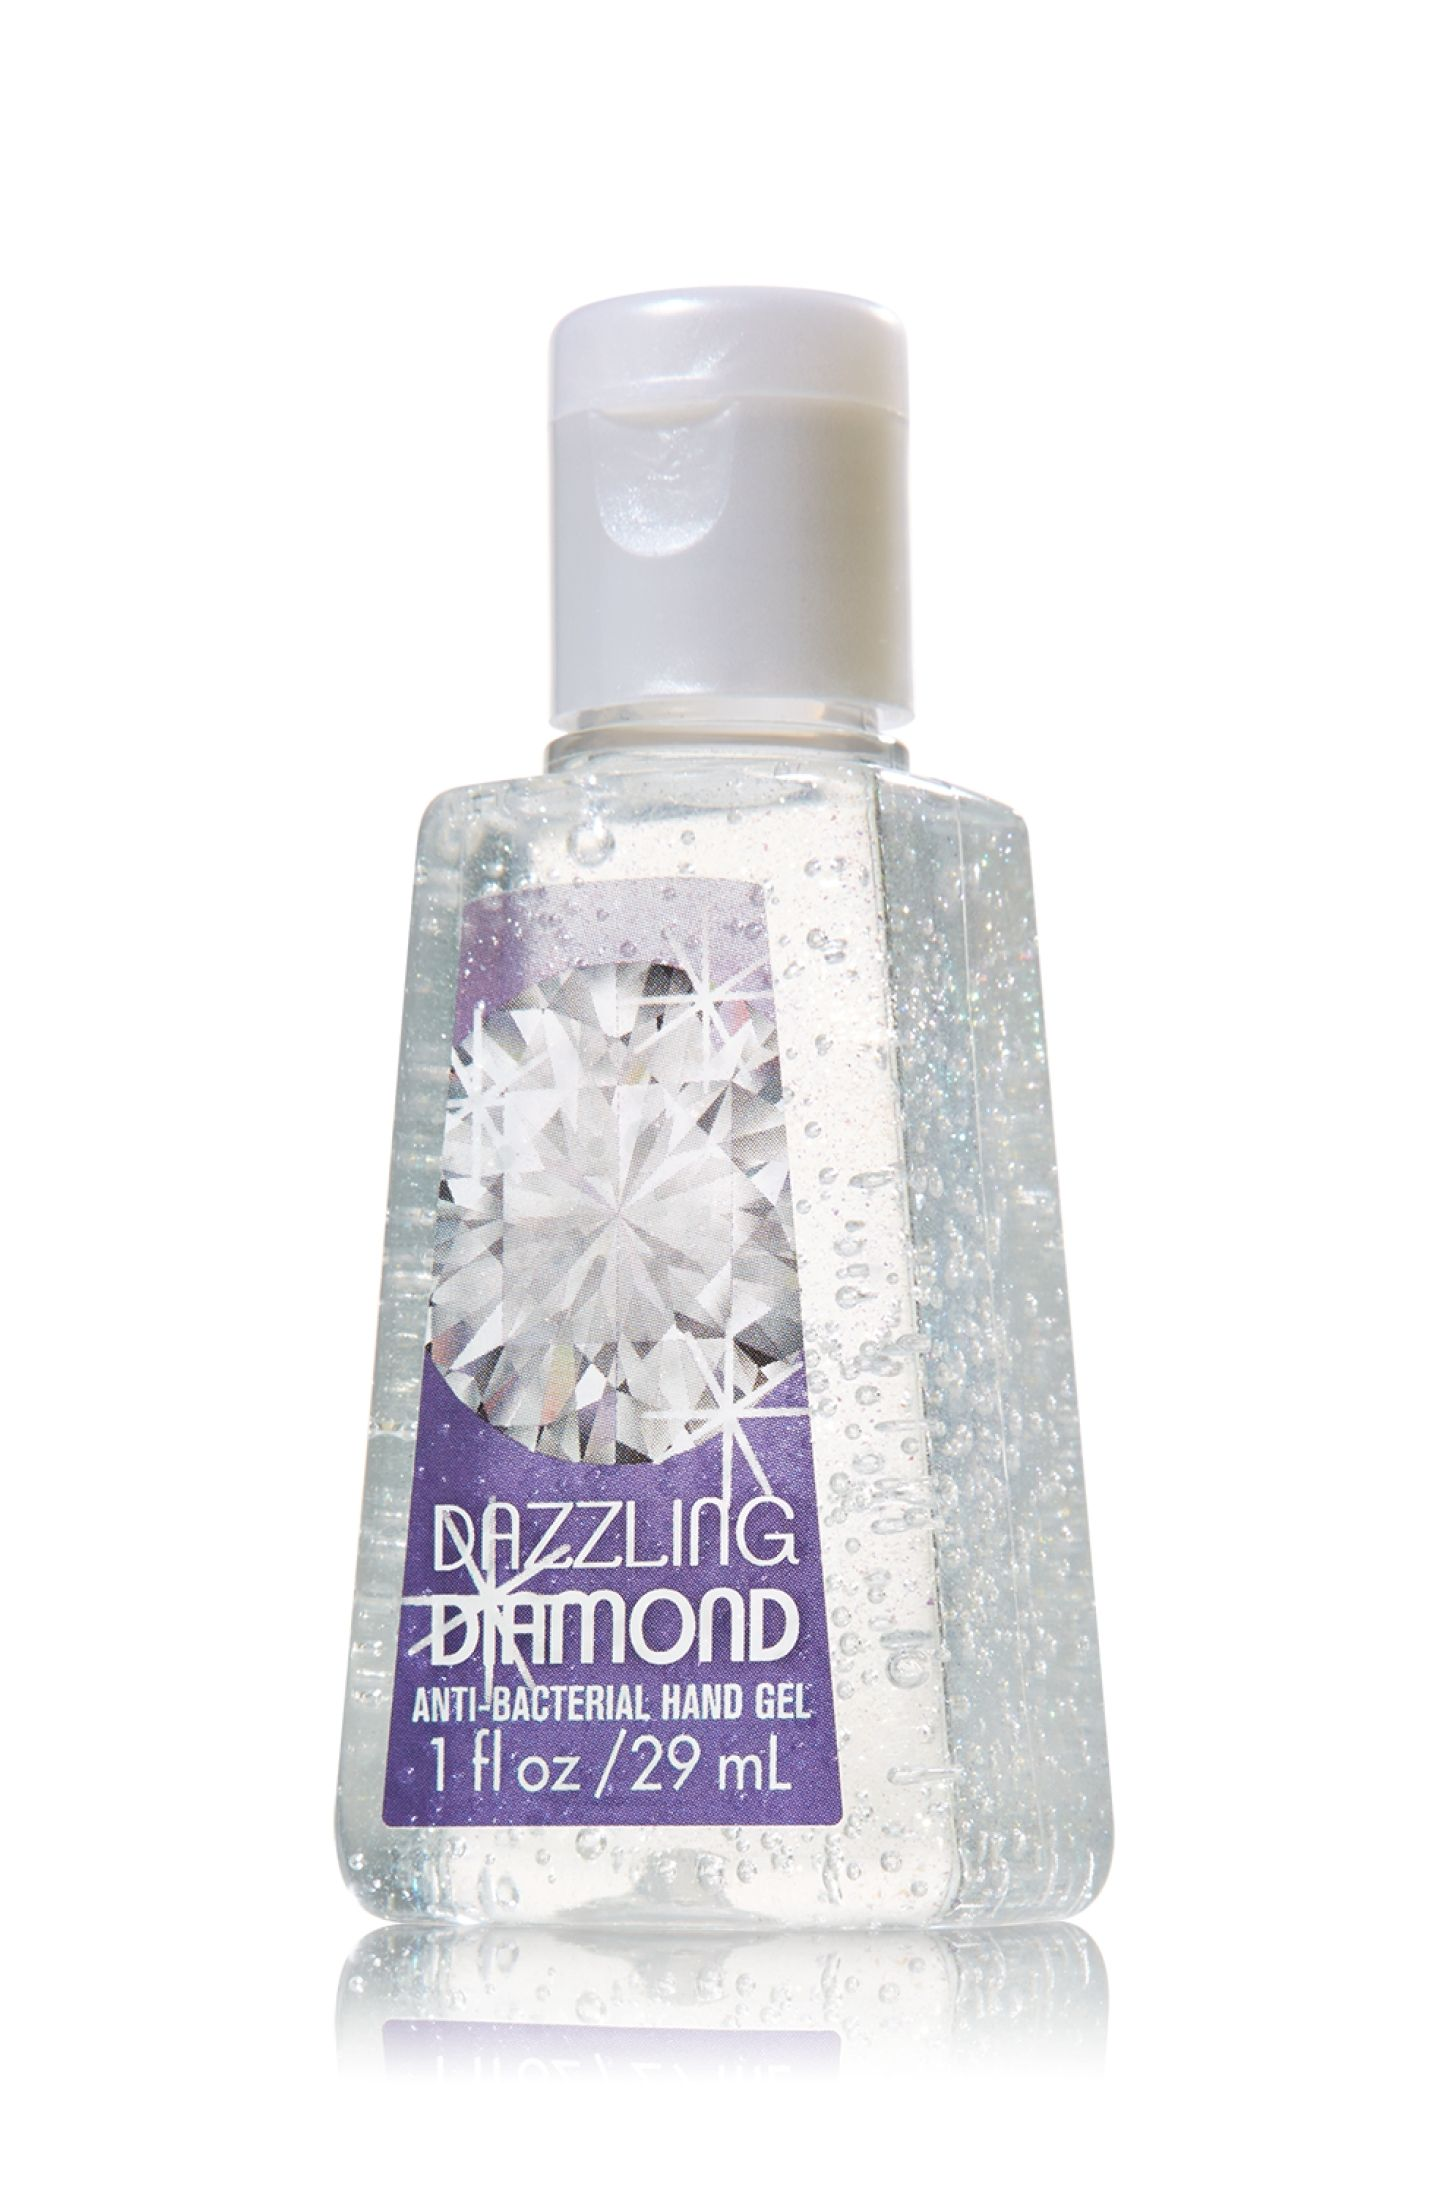 Dazzling Diamond Bath Body Works Pocketbac Sanitizing Hand Gel